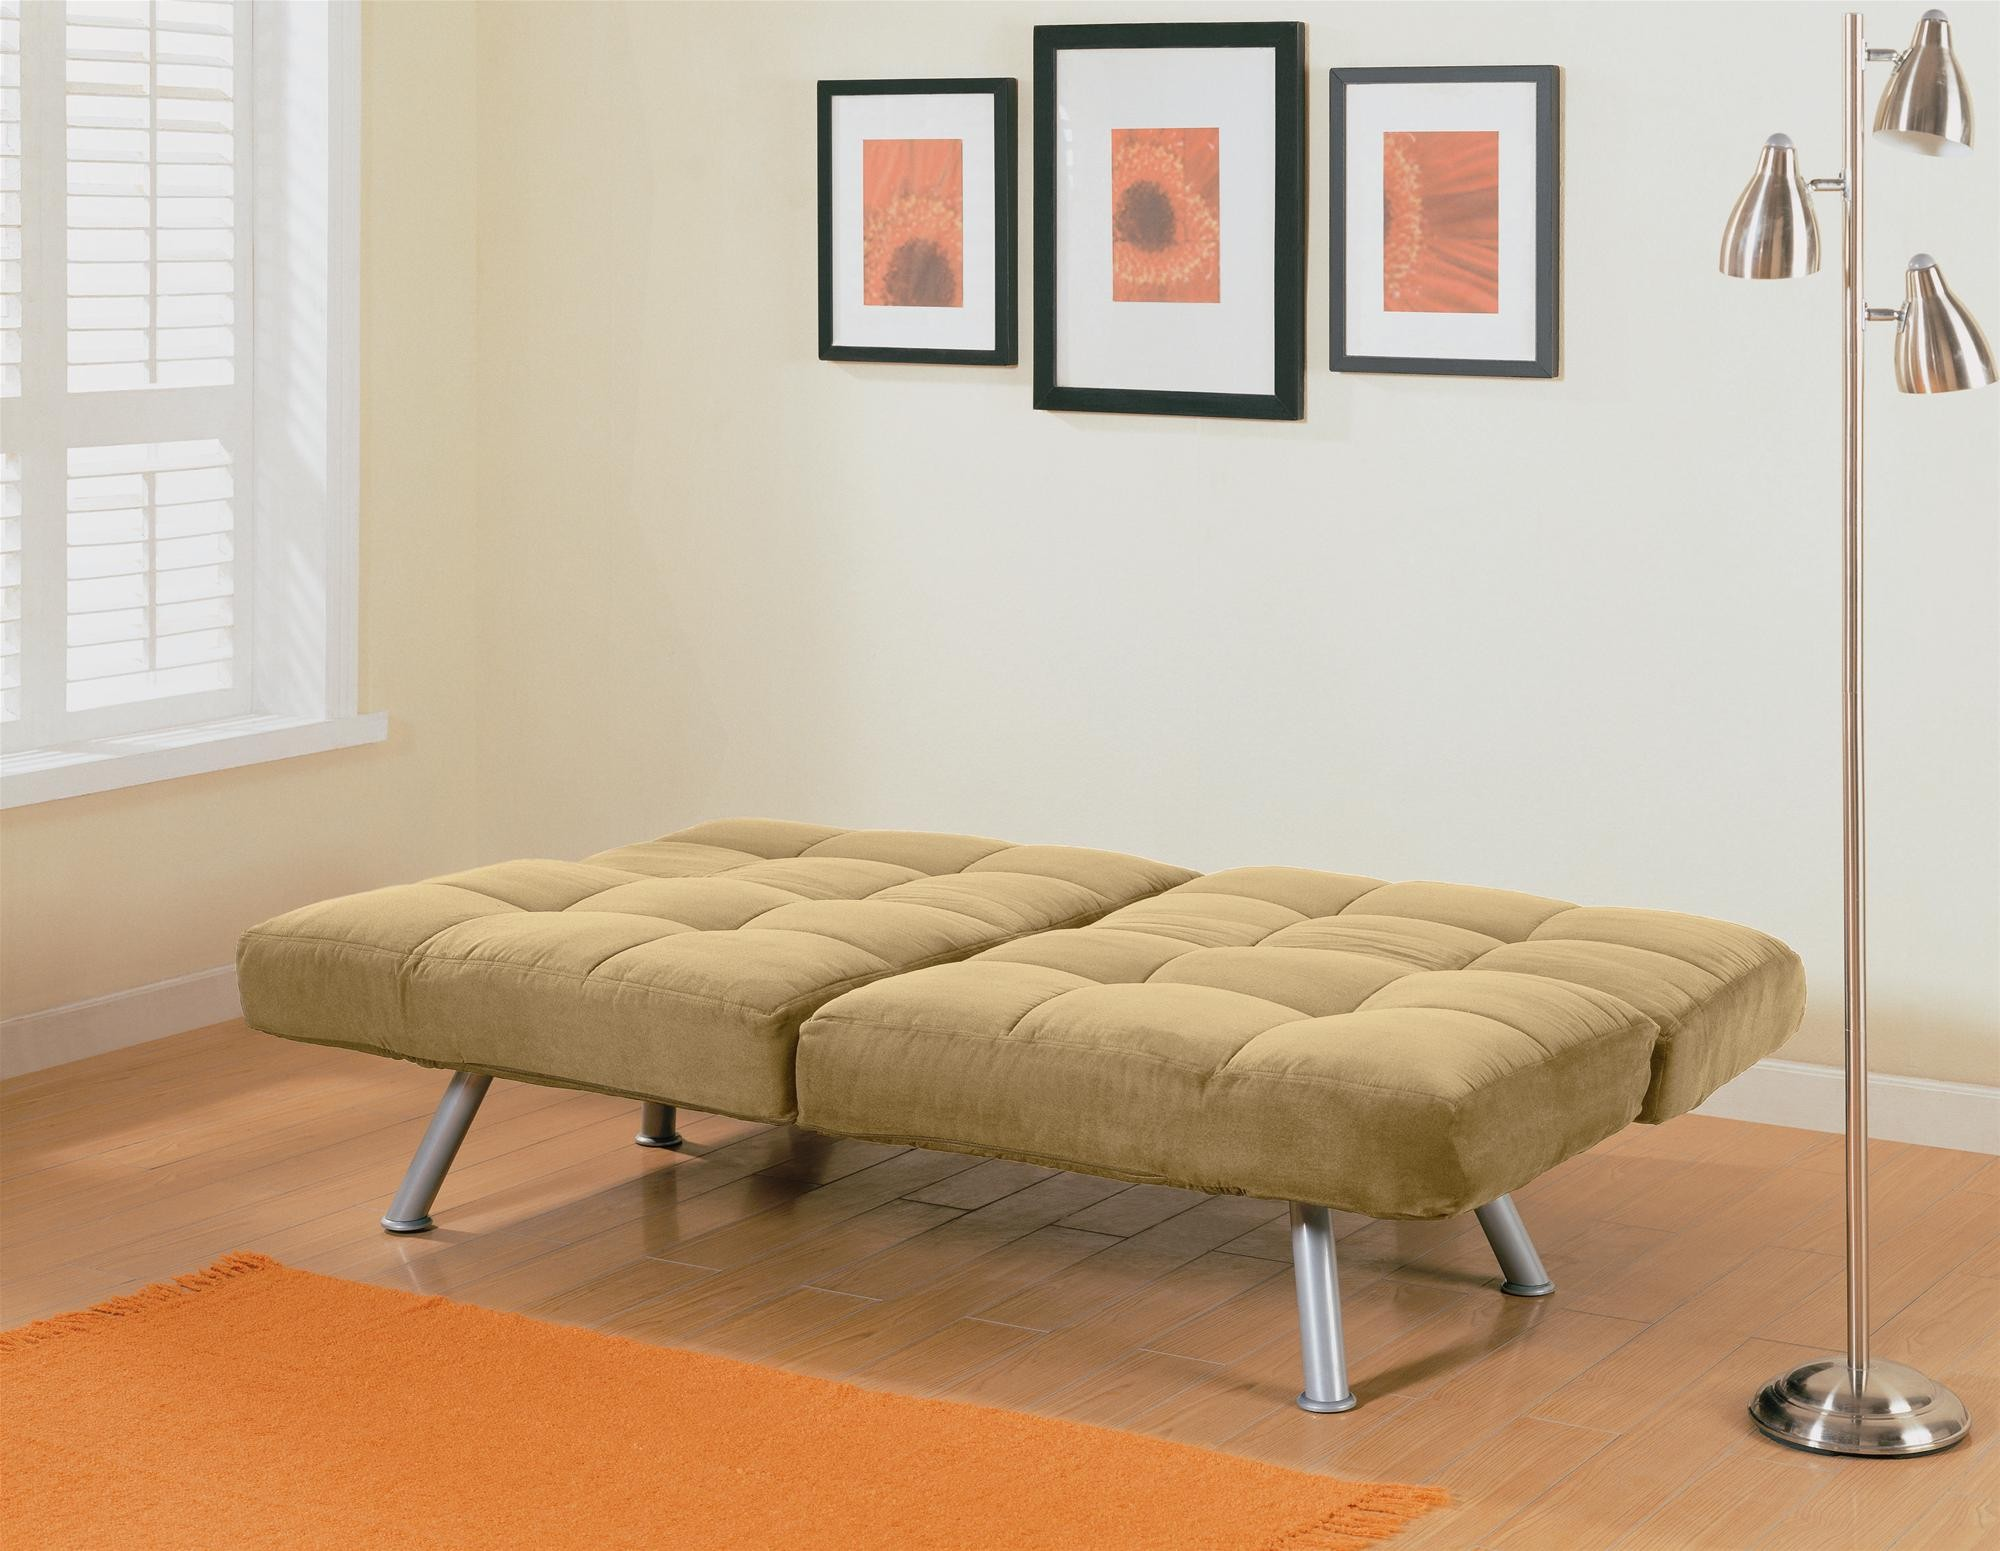 Sofa beds for small spaces also sleeper sofas for small apartement - Images of beds in small spaces ...